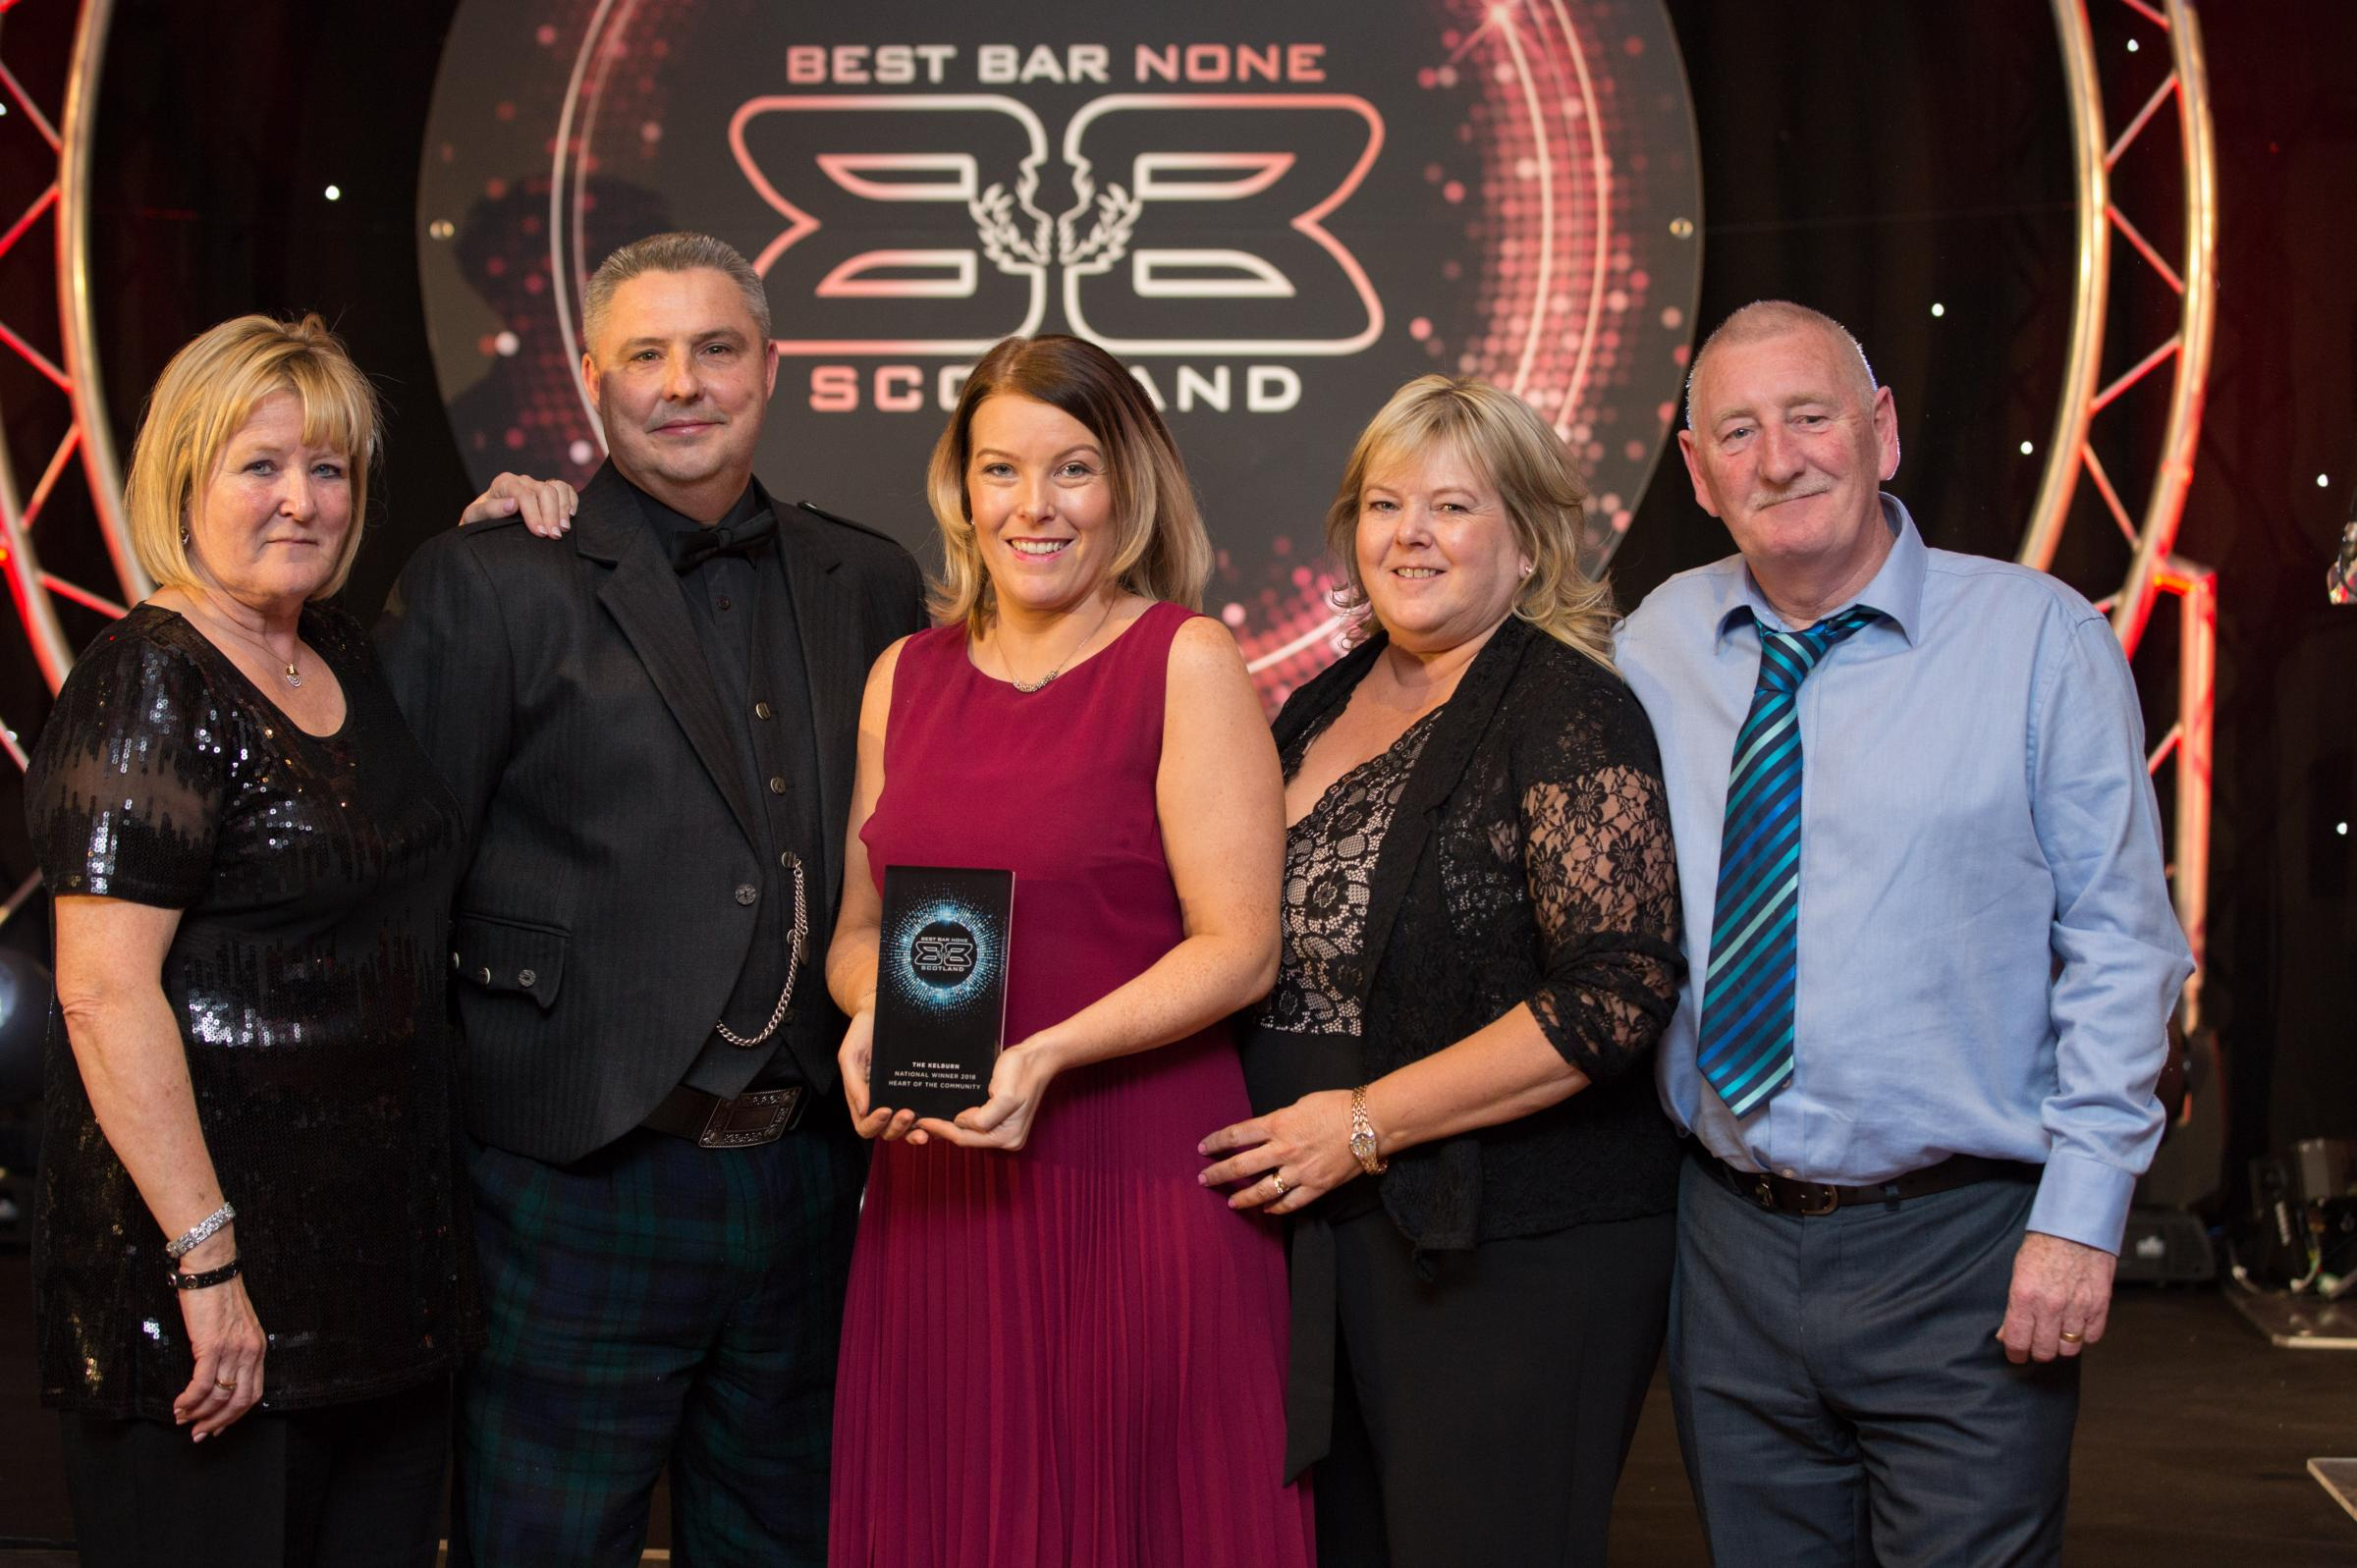 The Kelburn Bar is presented with the Heart of the Community award at Best Bar None